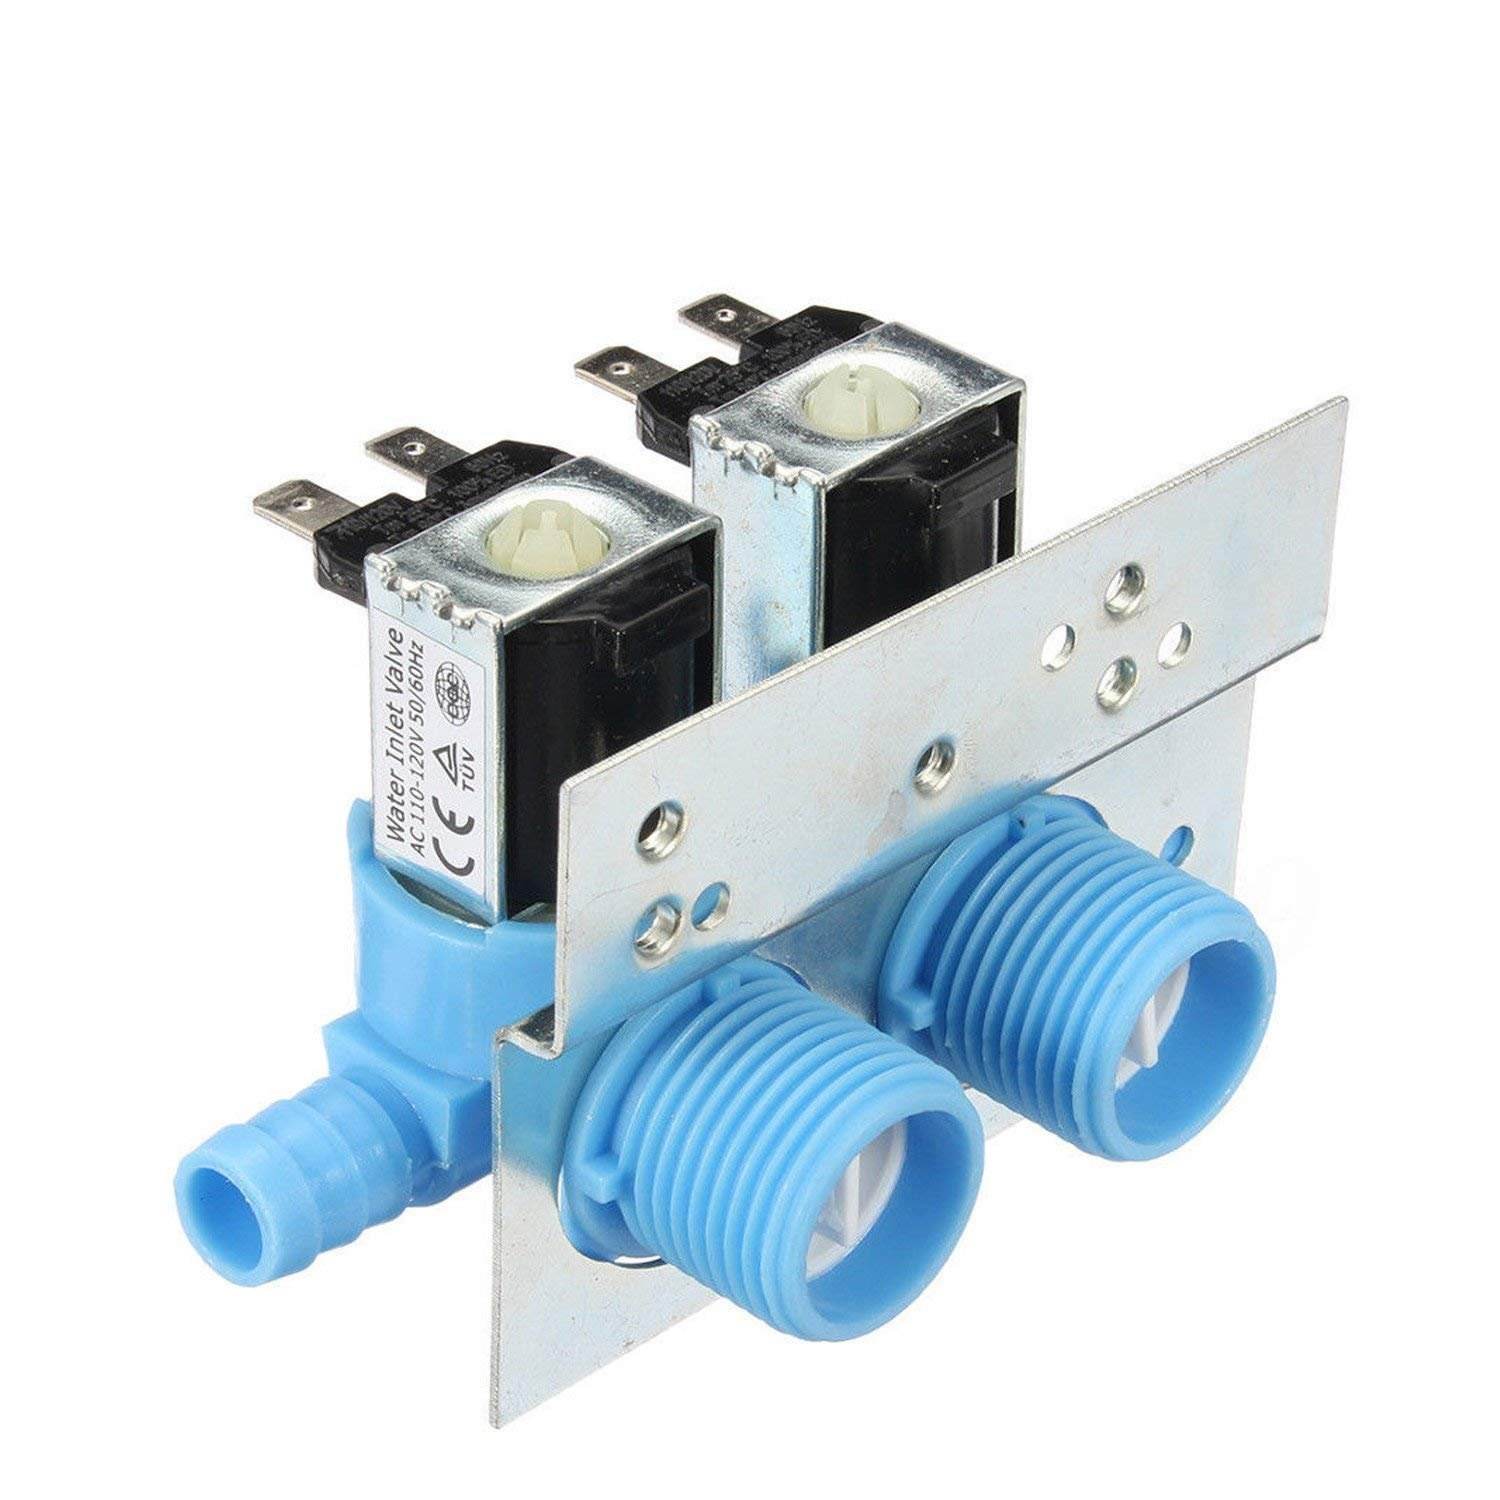 1 Piece 285805 Water Inlet Valve for Clothes Washer AC 110-120 V, 50/60HZ,Works with Whirlpool, GE, Kenmore and More